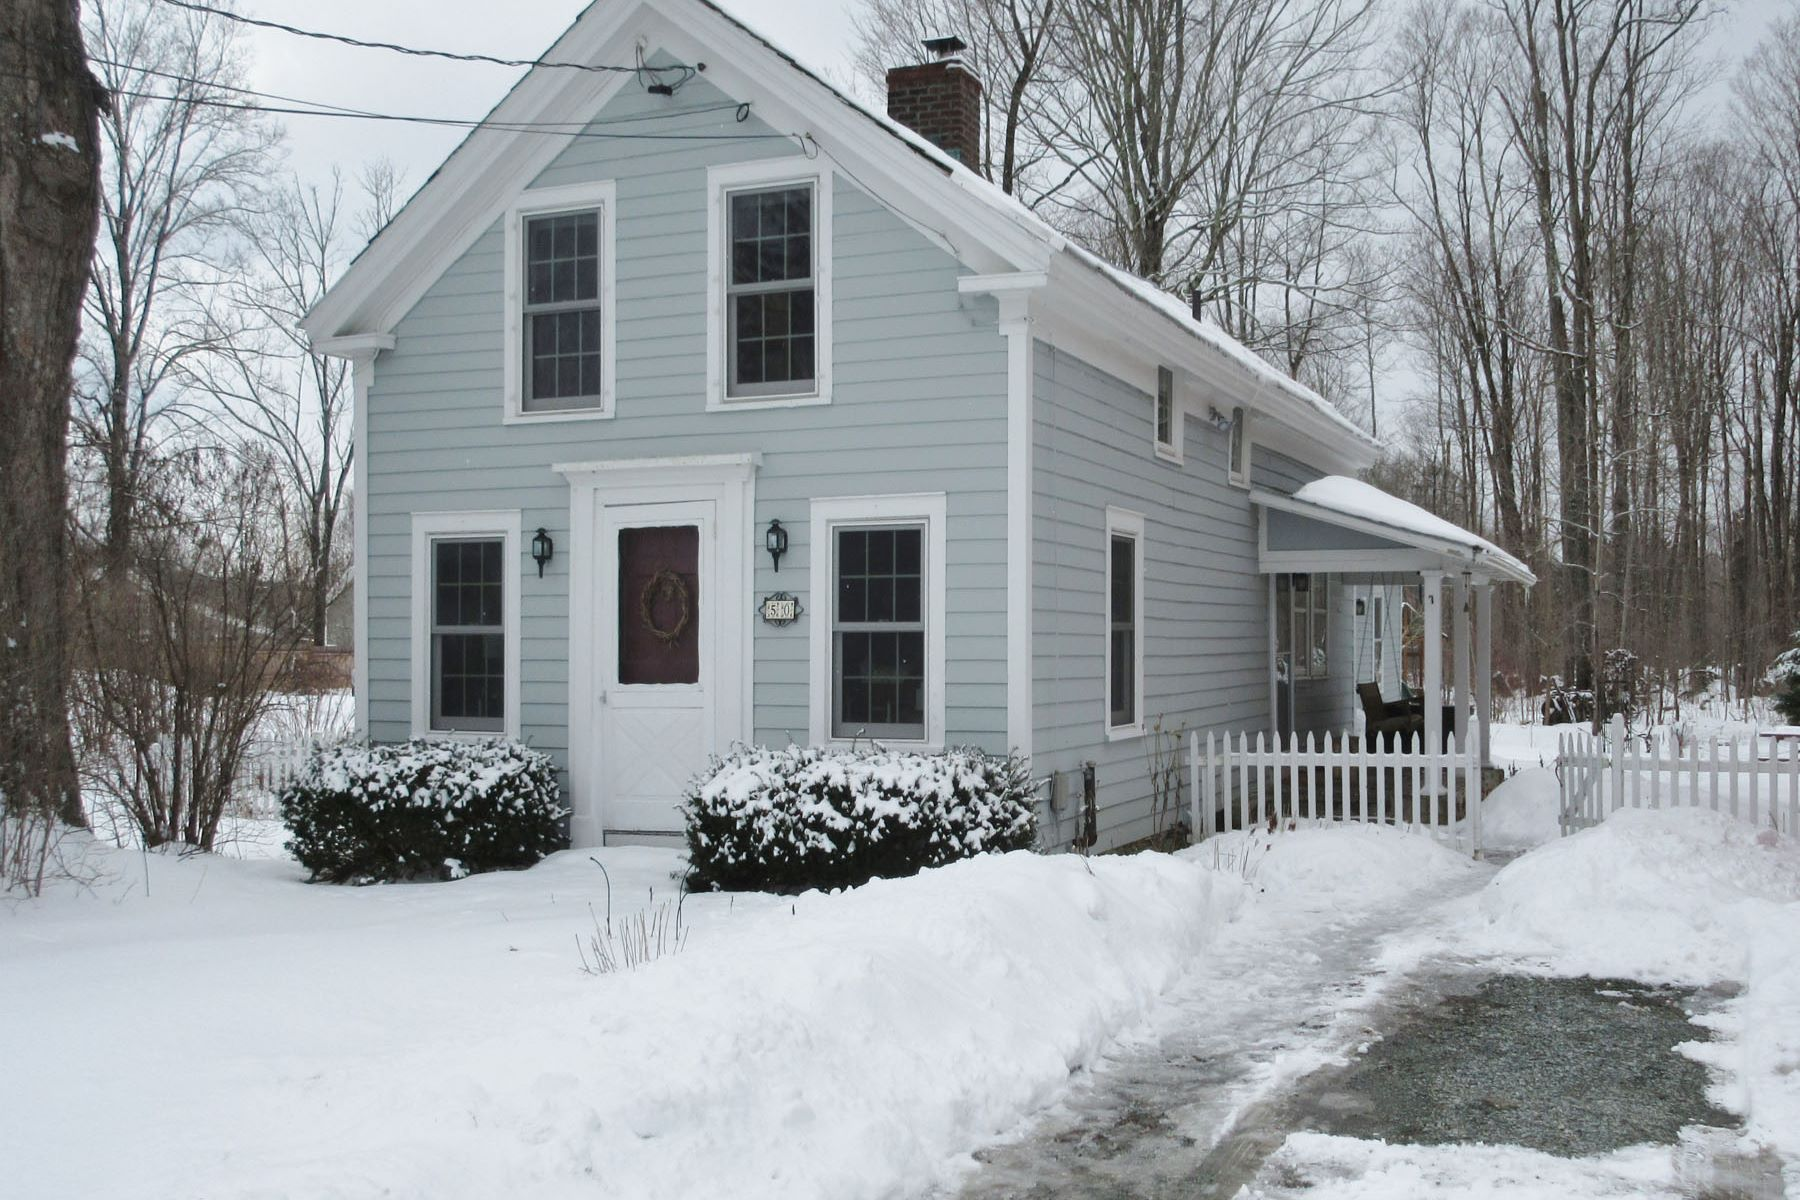 Single Family Home for Sale at 50 Bird Street Street, Poultney 50 Bird Street St Poultney, Vermont 05764 United States